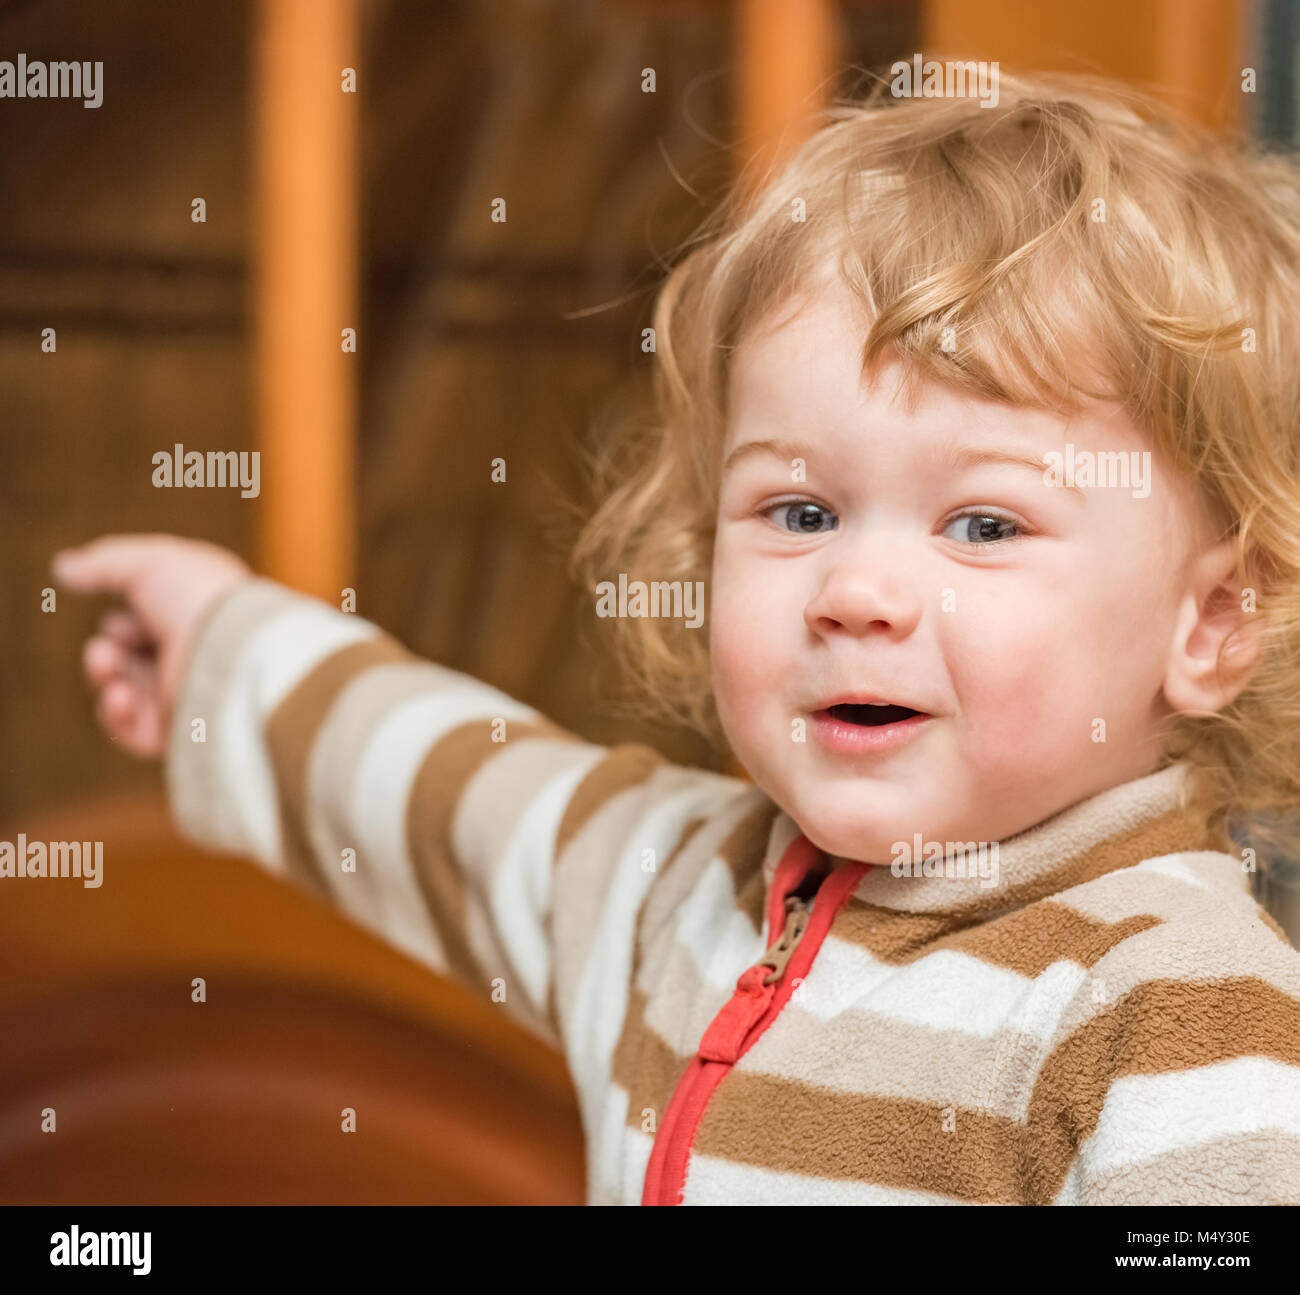 Blond curly-haired child - Stock Image